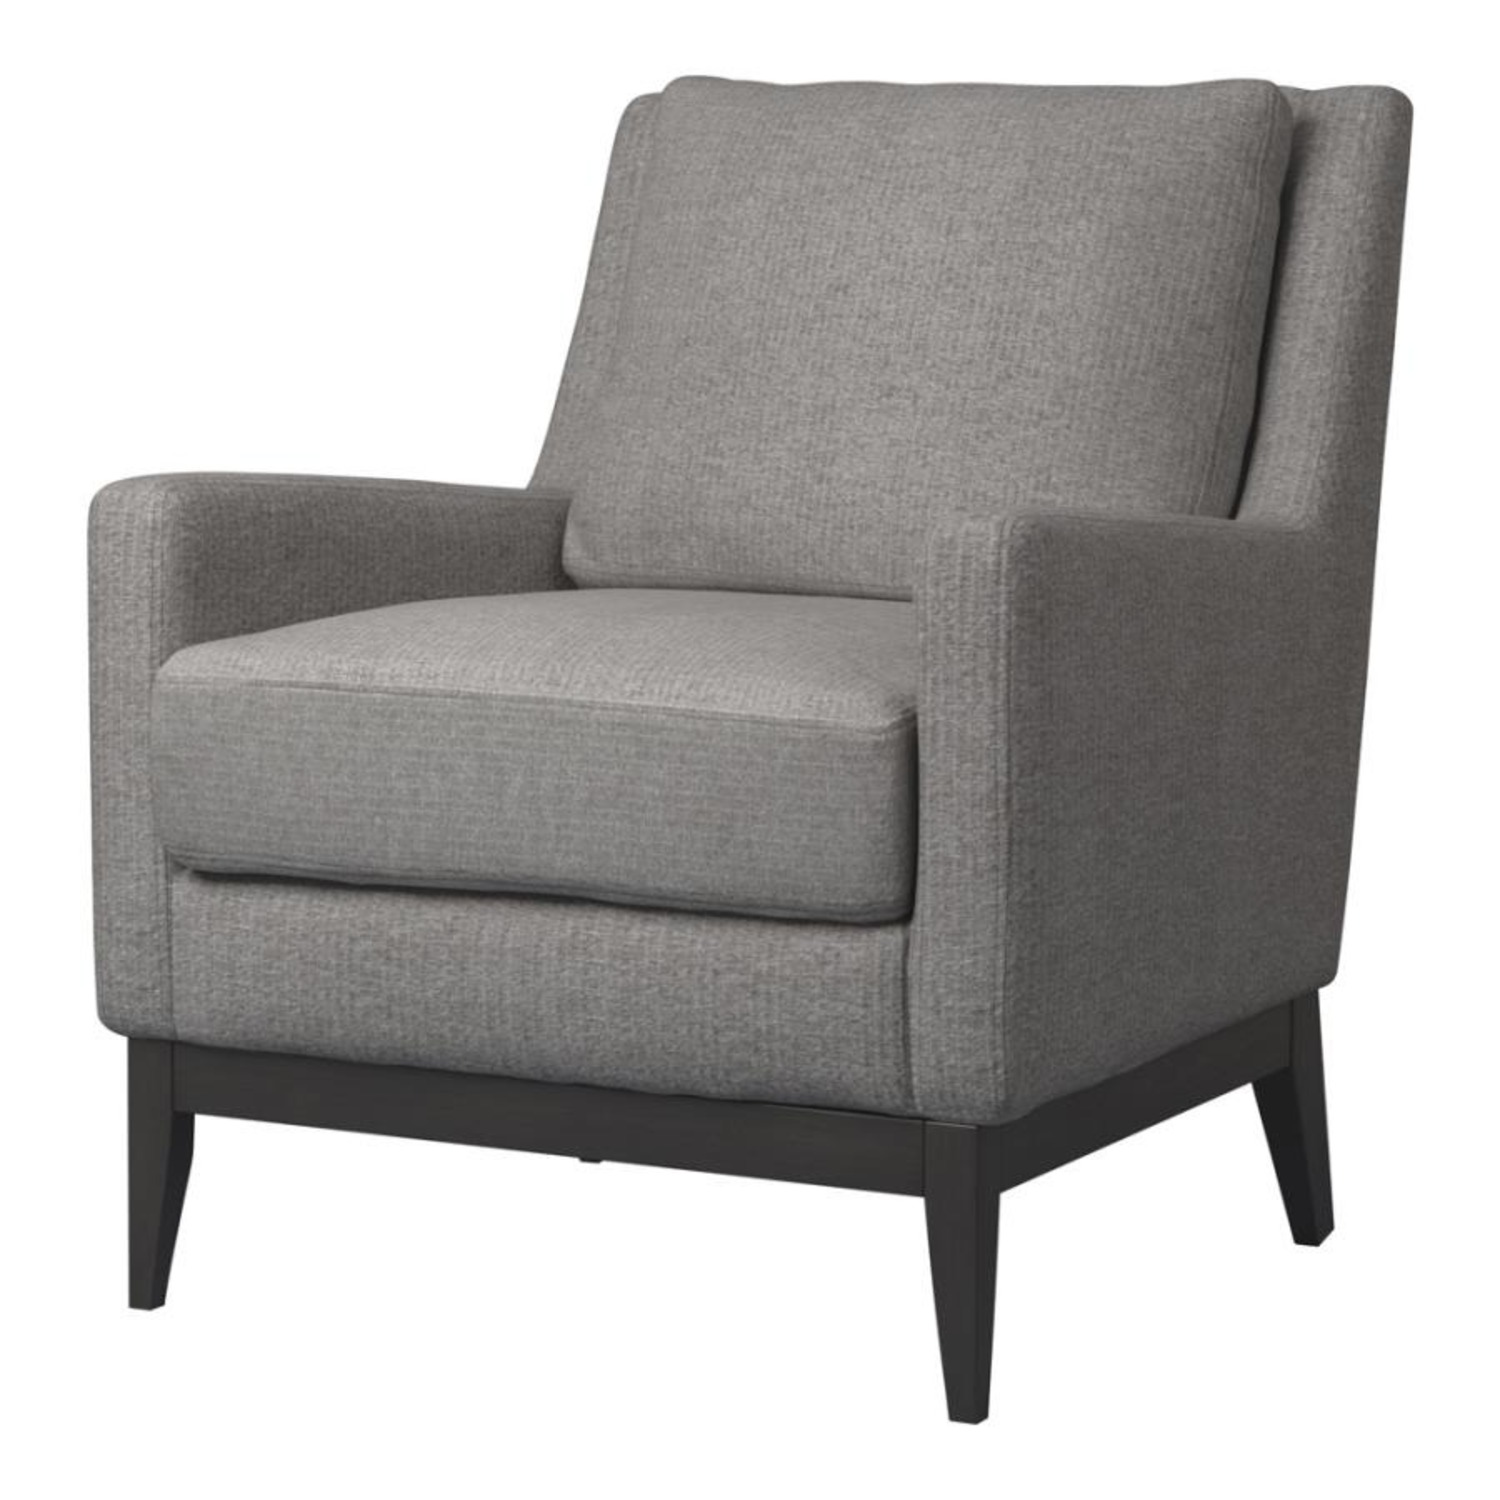 Accent Chair In Linen-Like Warm Grey Fabric Finish - image-0